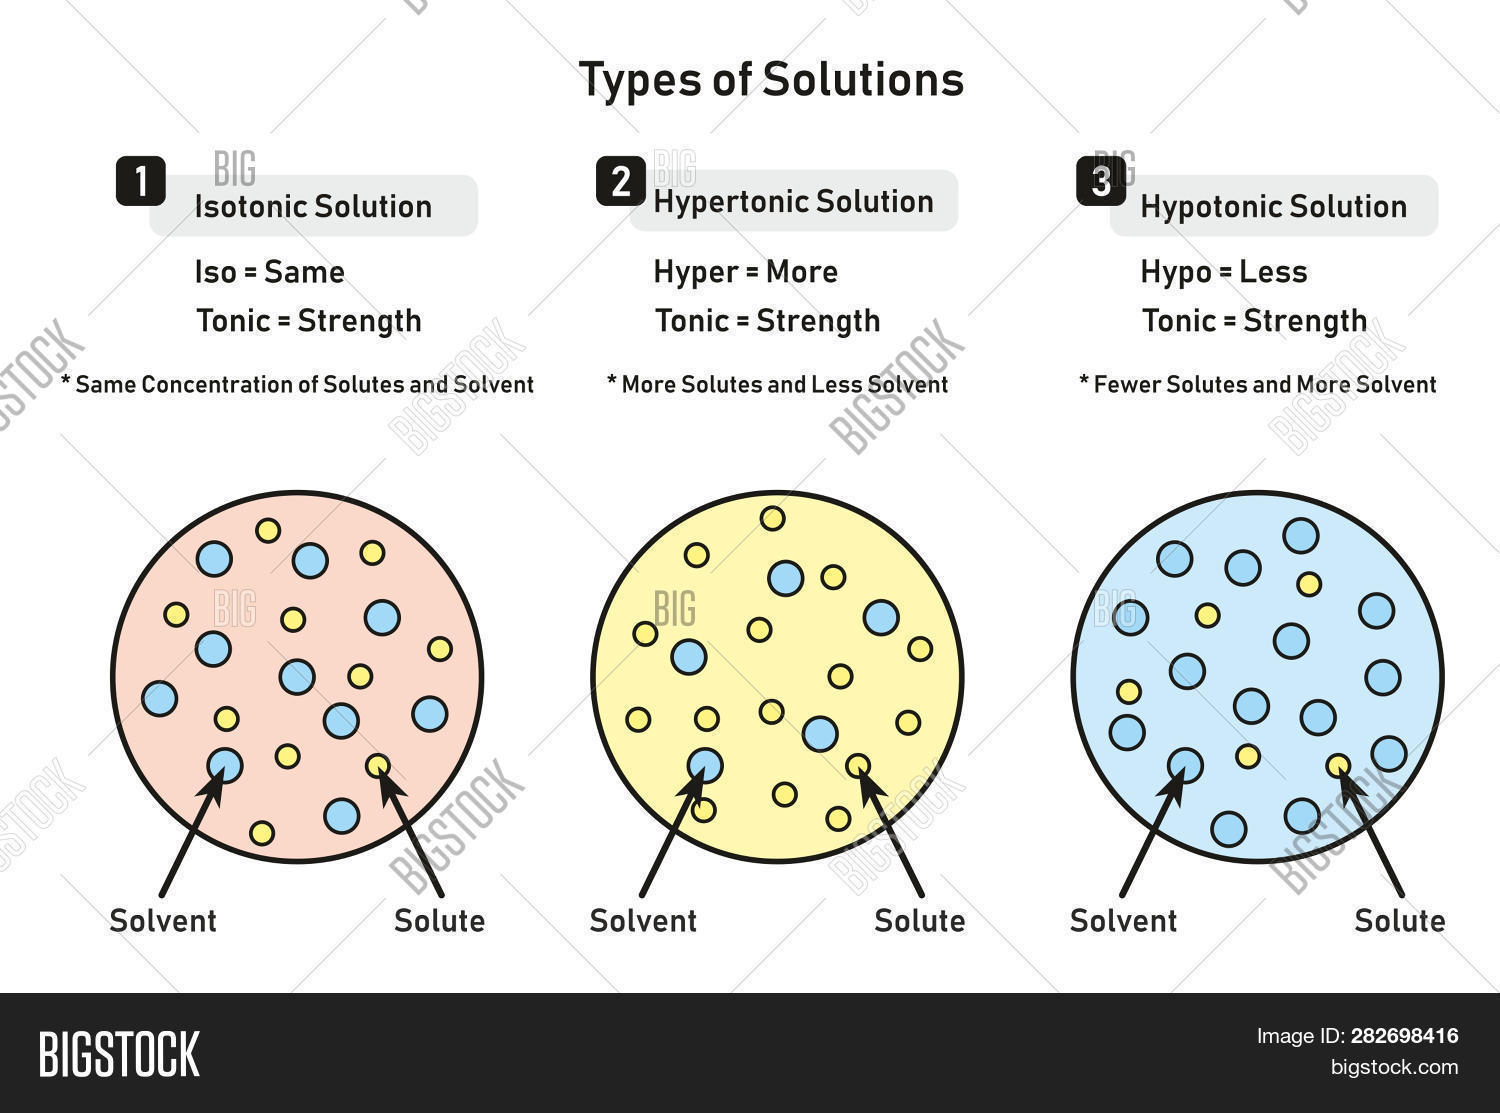 Types Solutions Image Amp Photo Free Trial